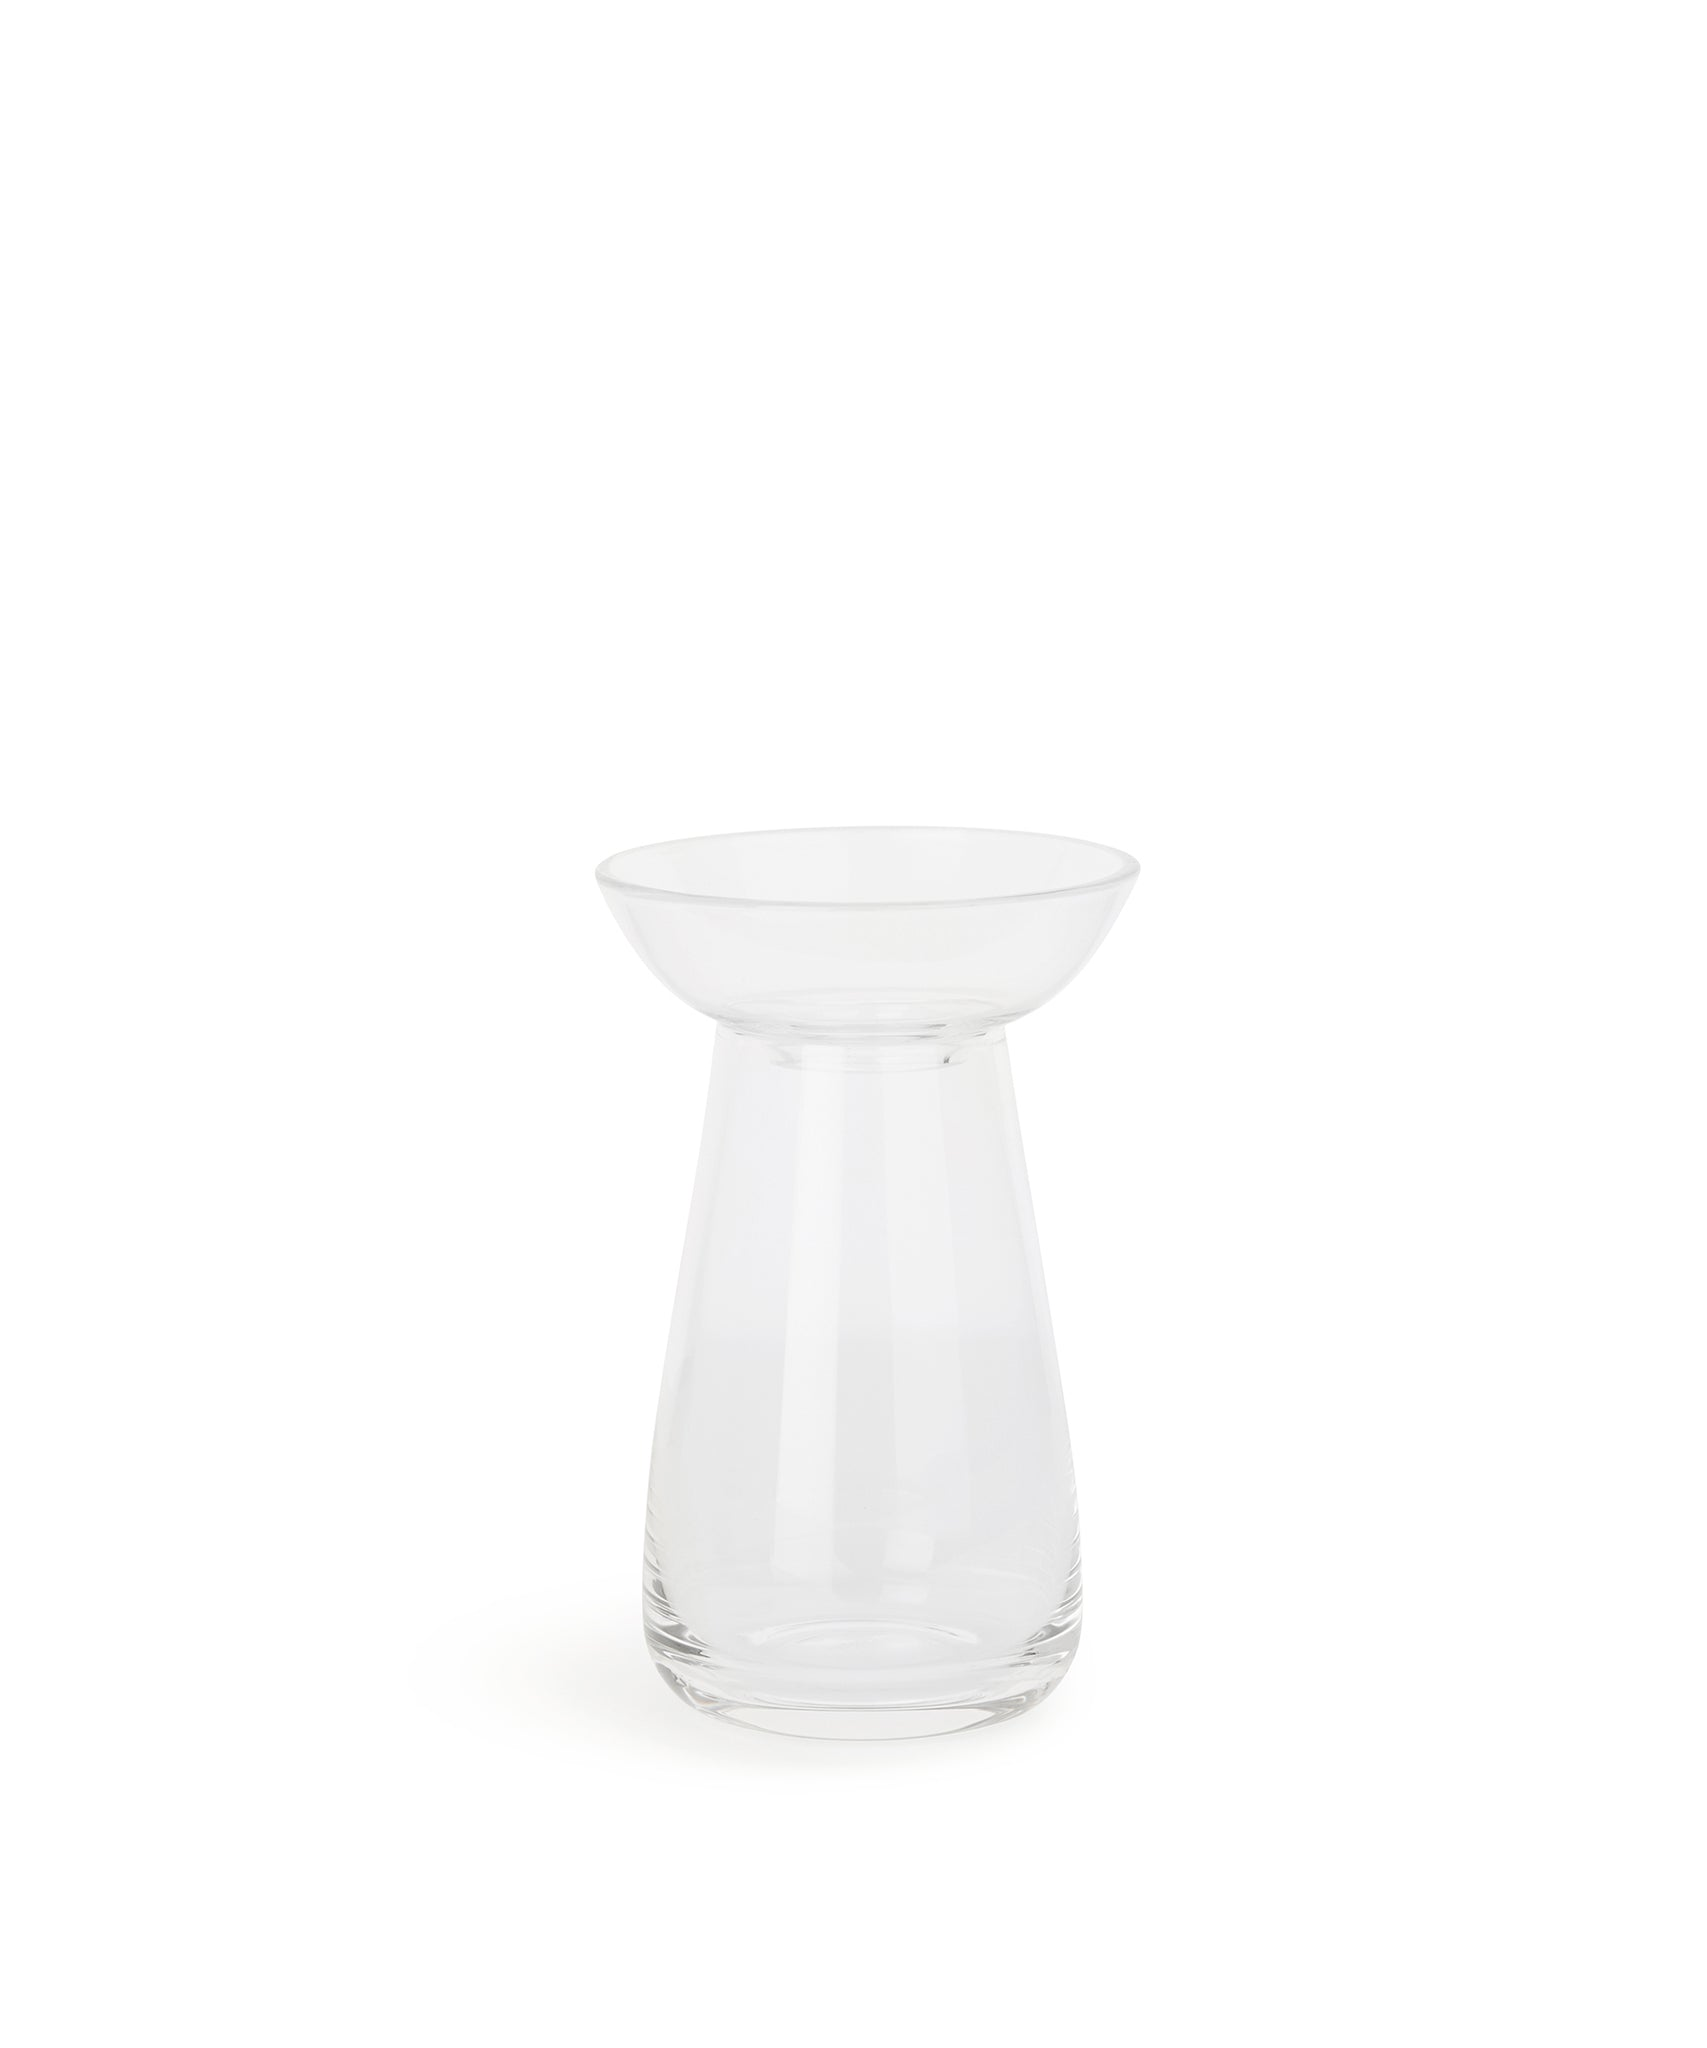 Aqua Culture Vase 130mm (Clear) by Kinto